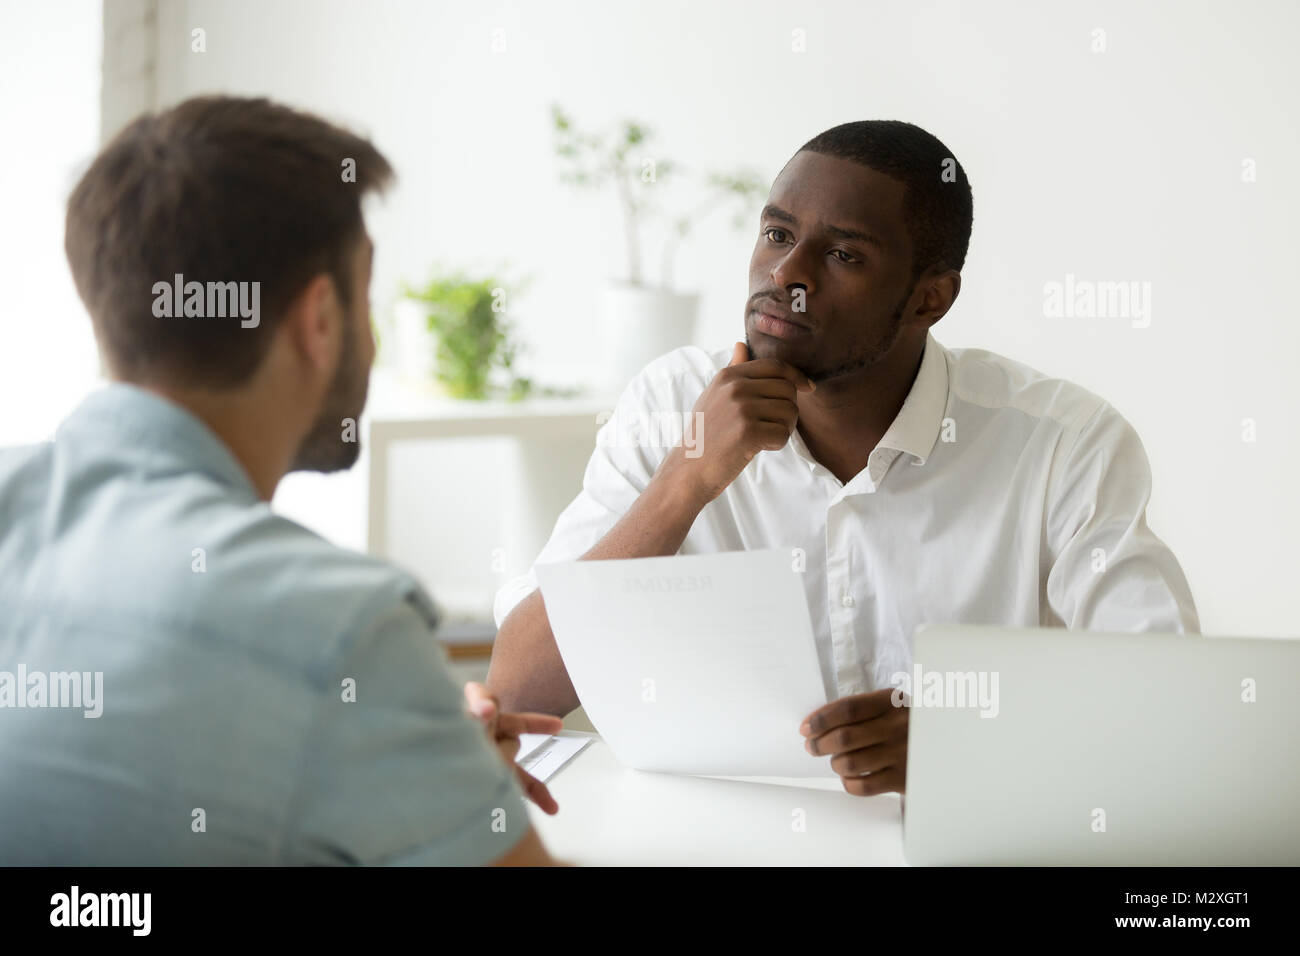 Serious attentive african hr manager listening to caucasian candidate at job interview, focused strict employer - Stock Image